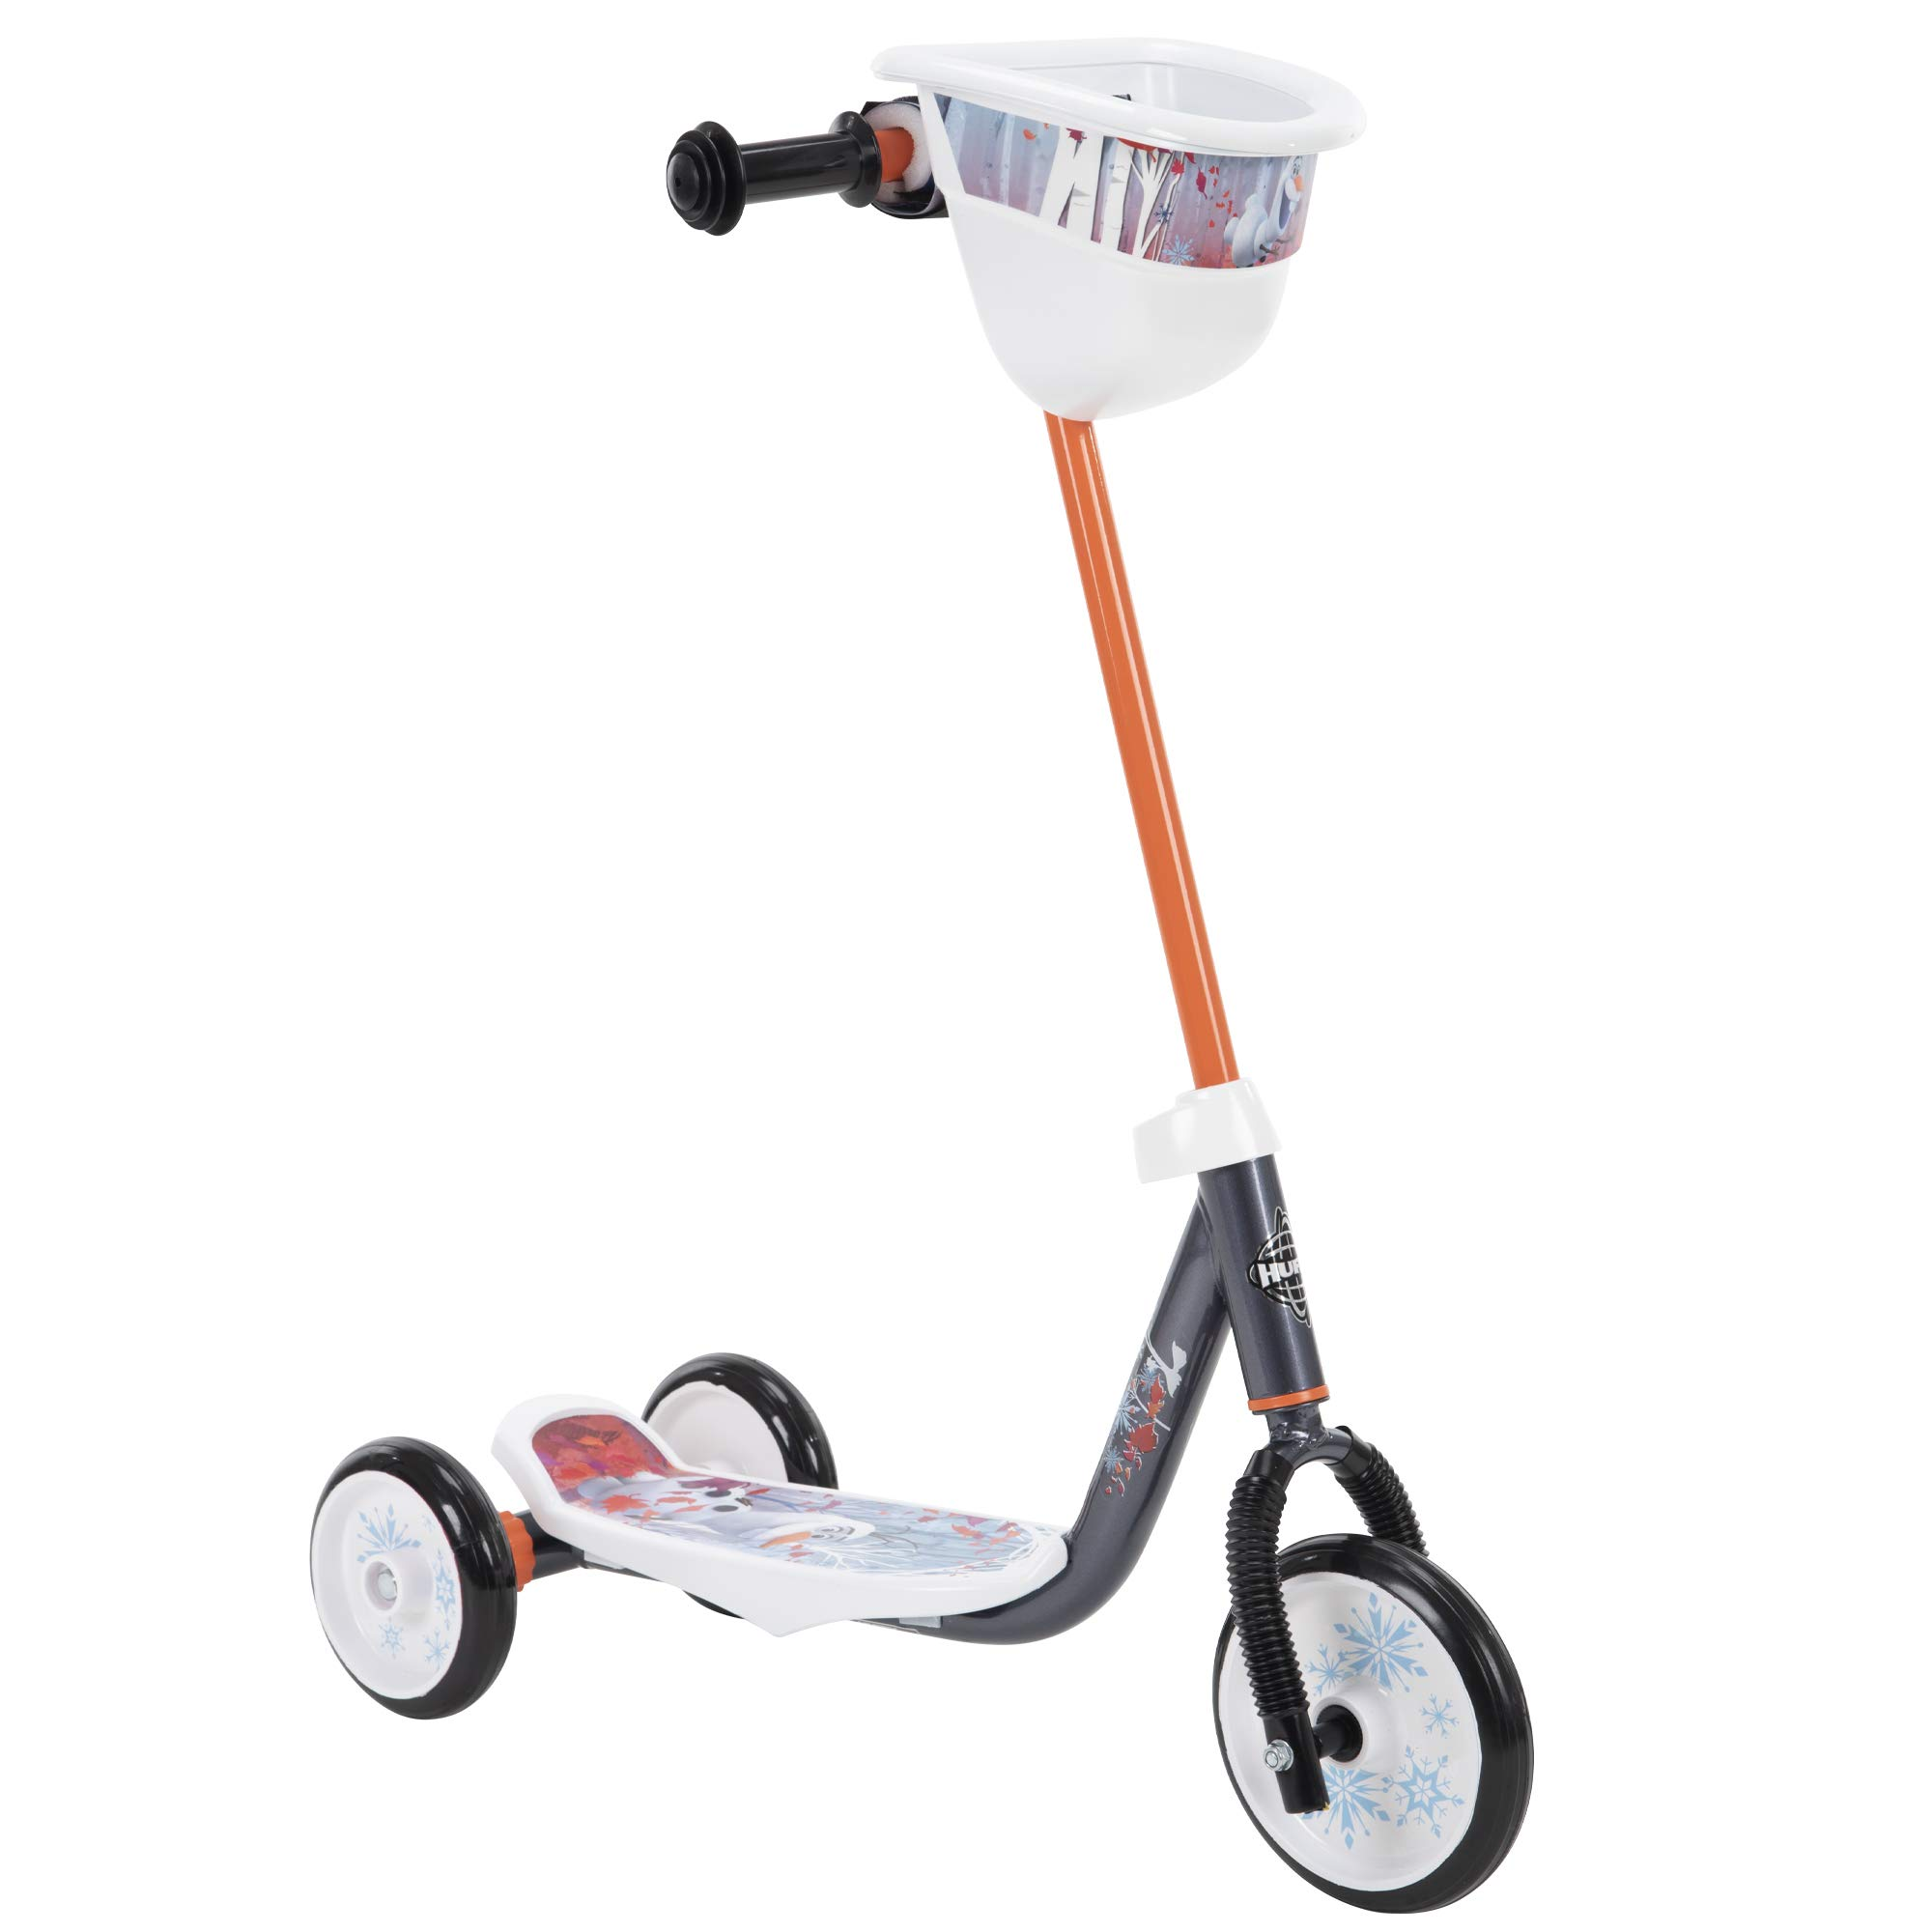 Huffy Frozen 2 Olaf Preschool Scooter, Handlebar Bin, Three Wheels & Wide Deck